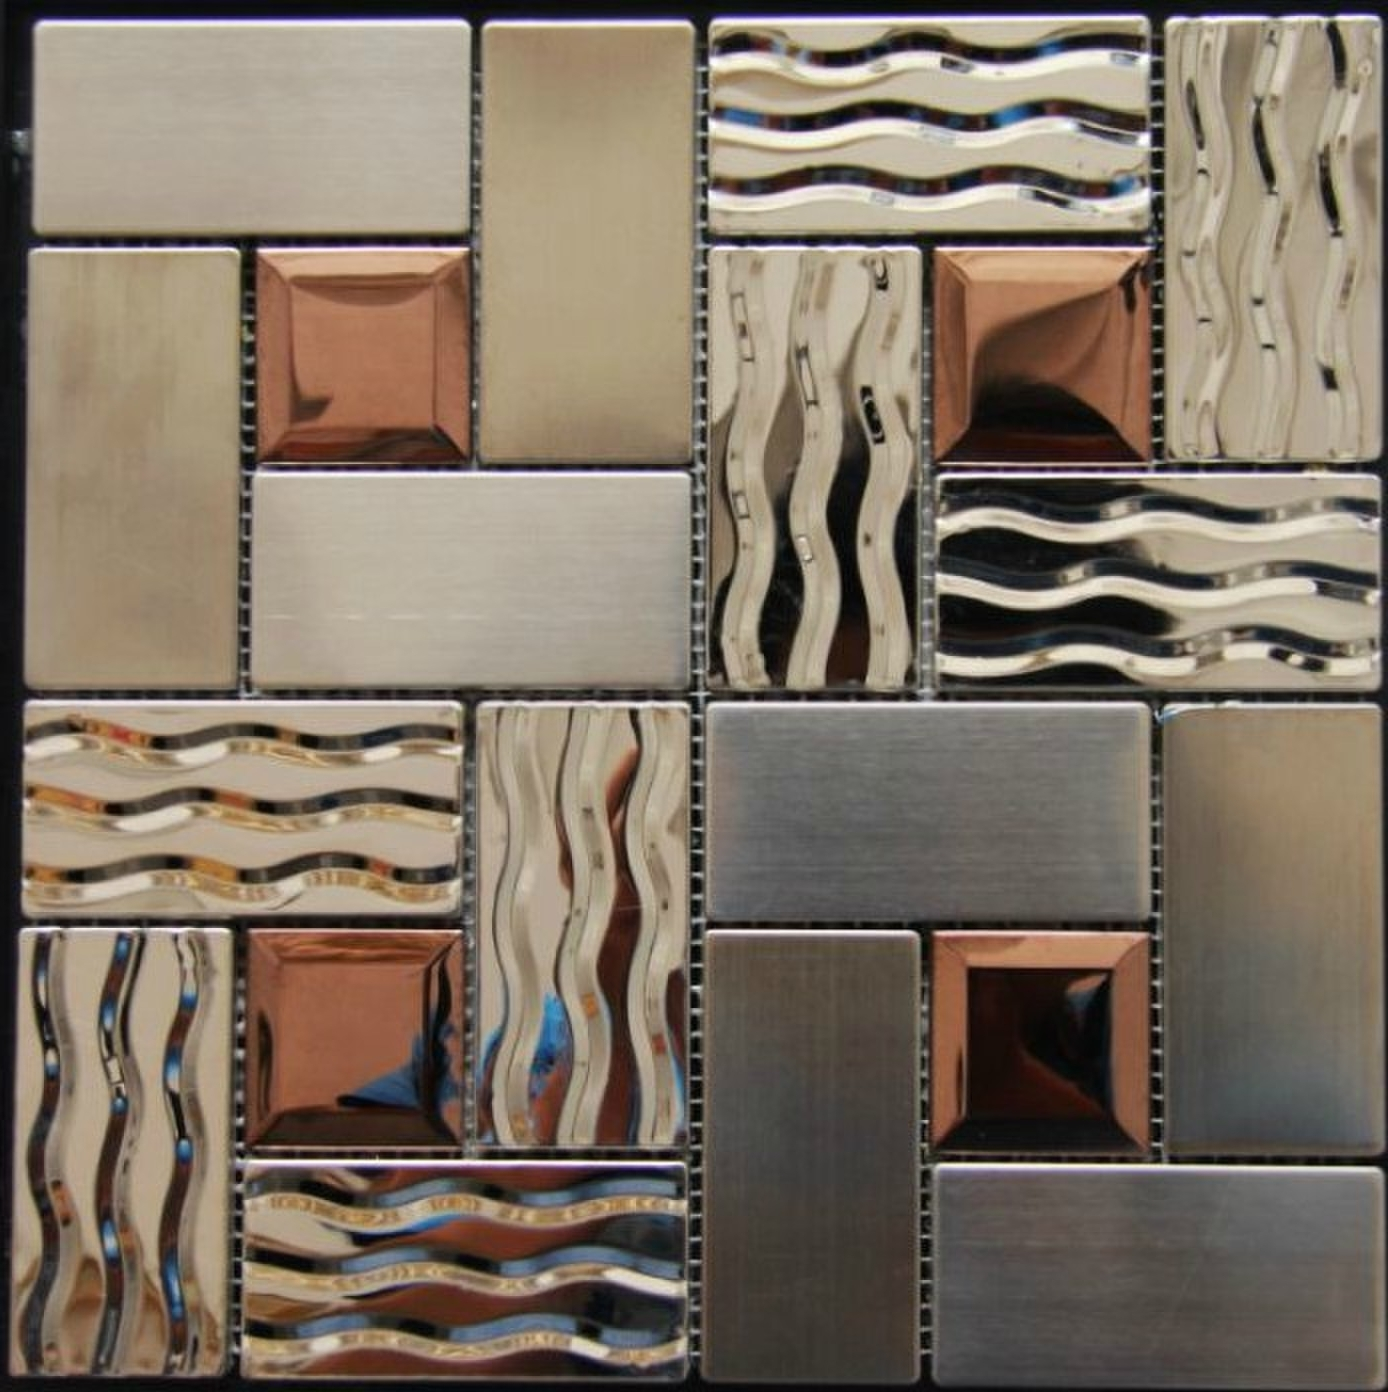 Stainless Steel Tile Backsplash Ssmt269 Kitchen Mosaic Glass Wall Inside Widely Used 3D Glass Wall Art (View 12 of 15)